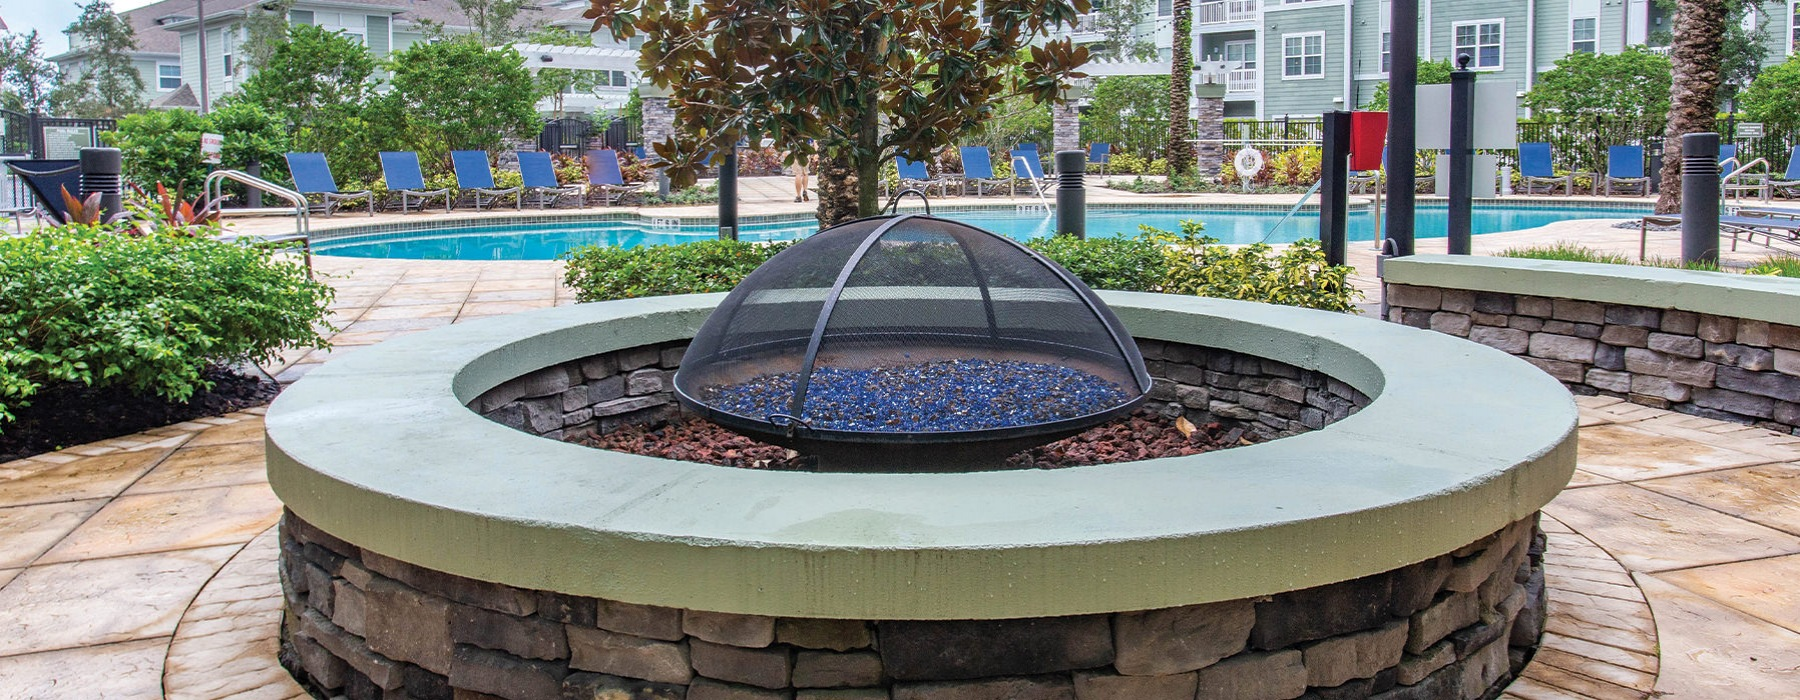 Fire pit near the pool